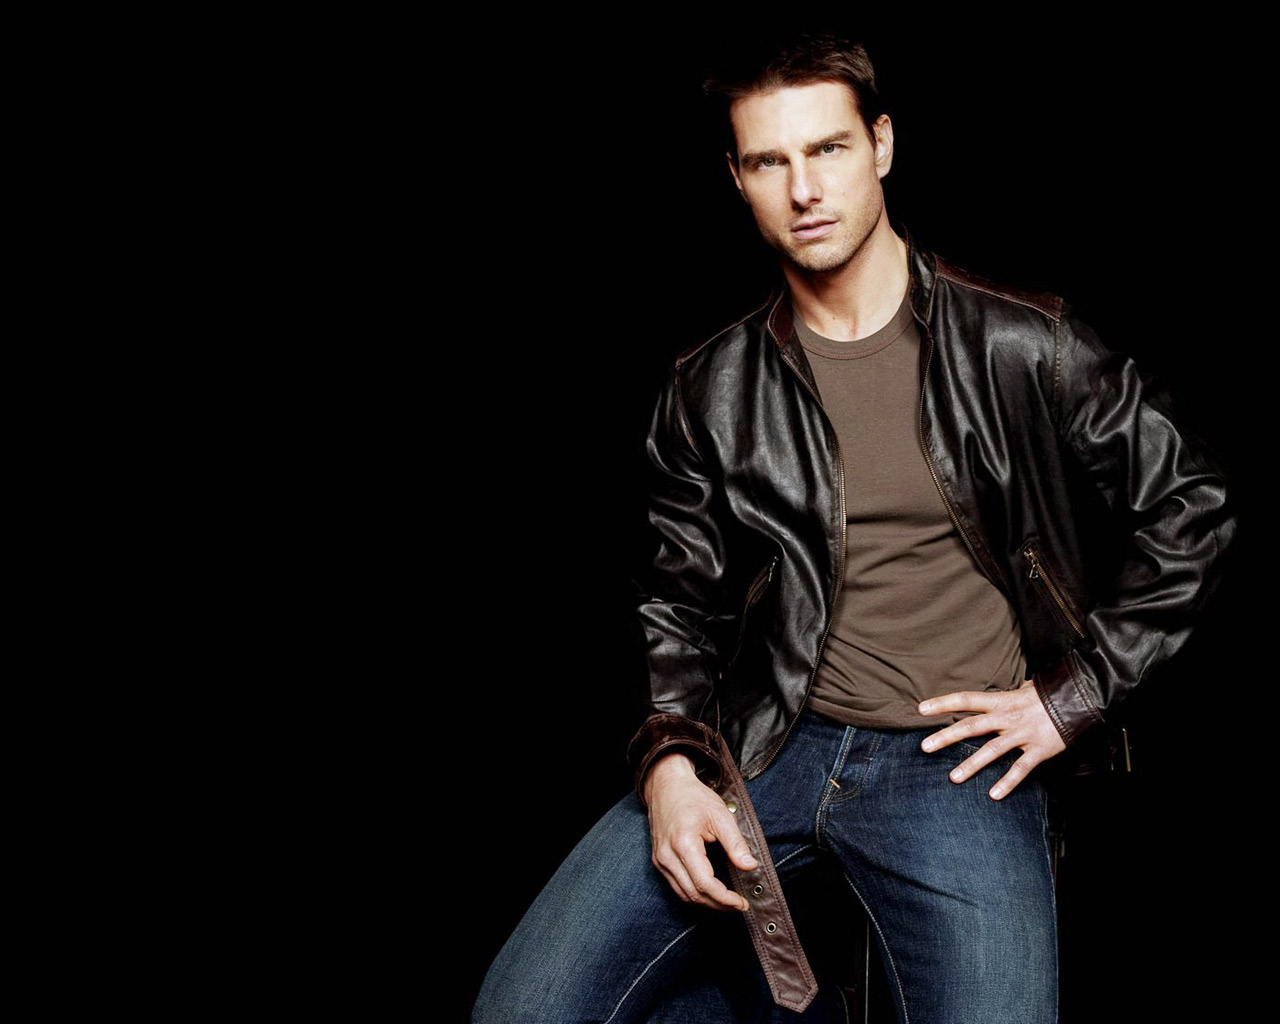 Tom Cruise Profile And Pictures/Photos 2012